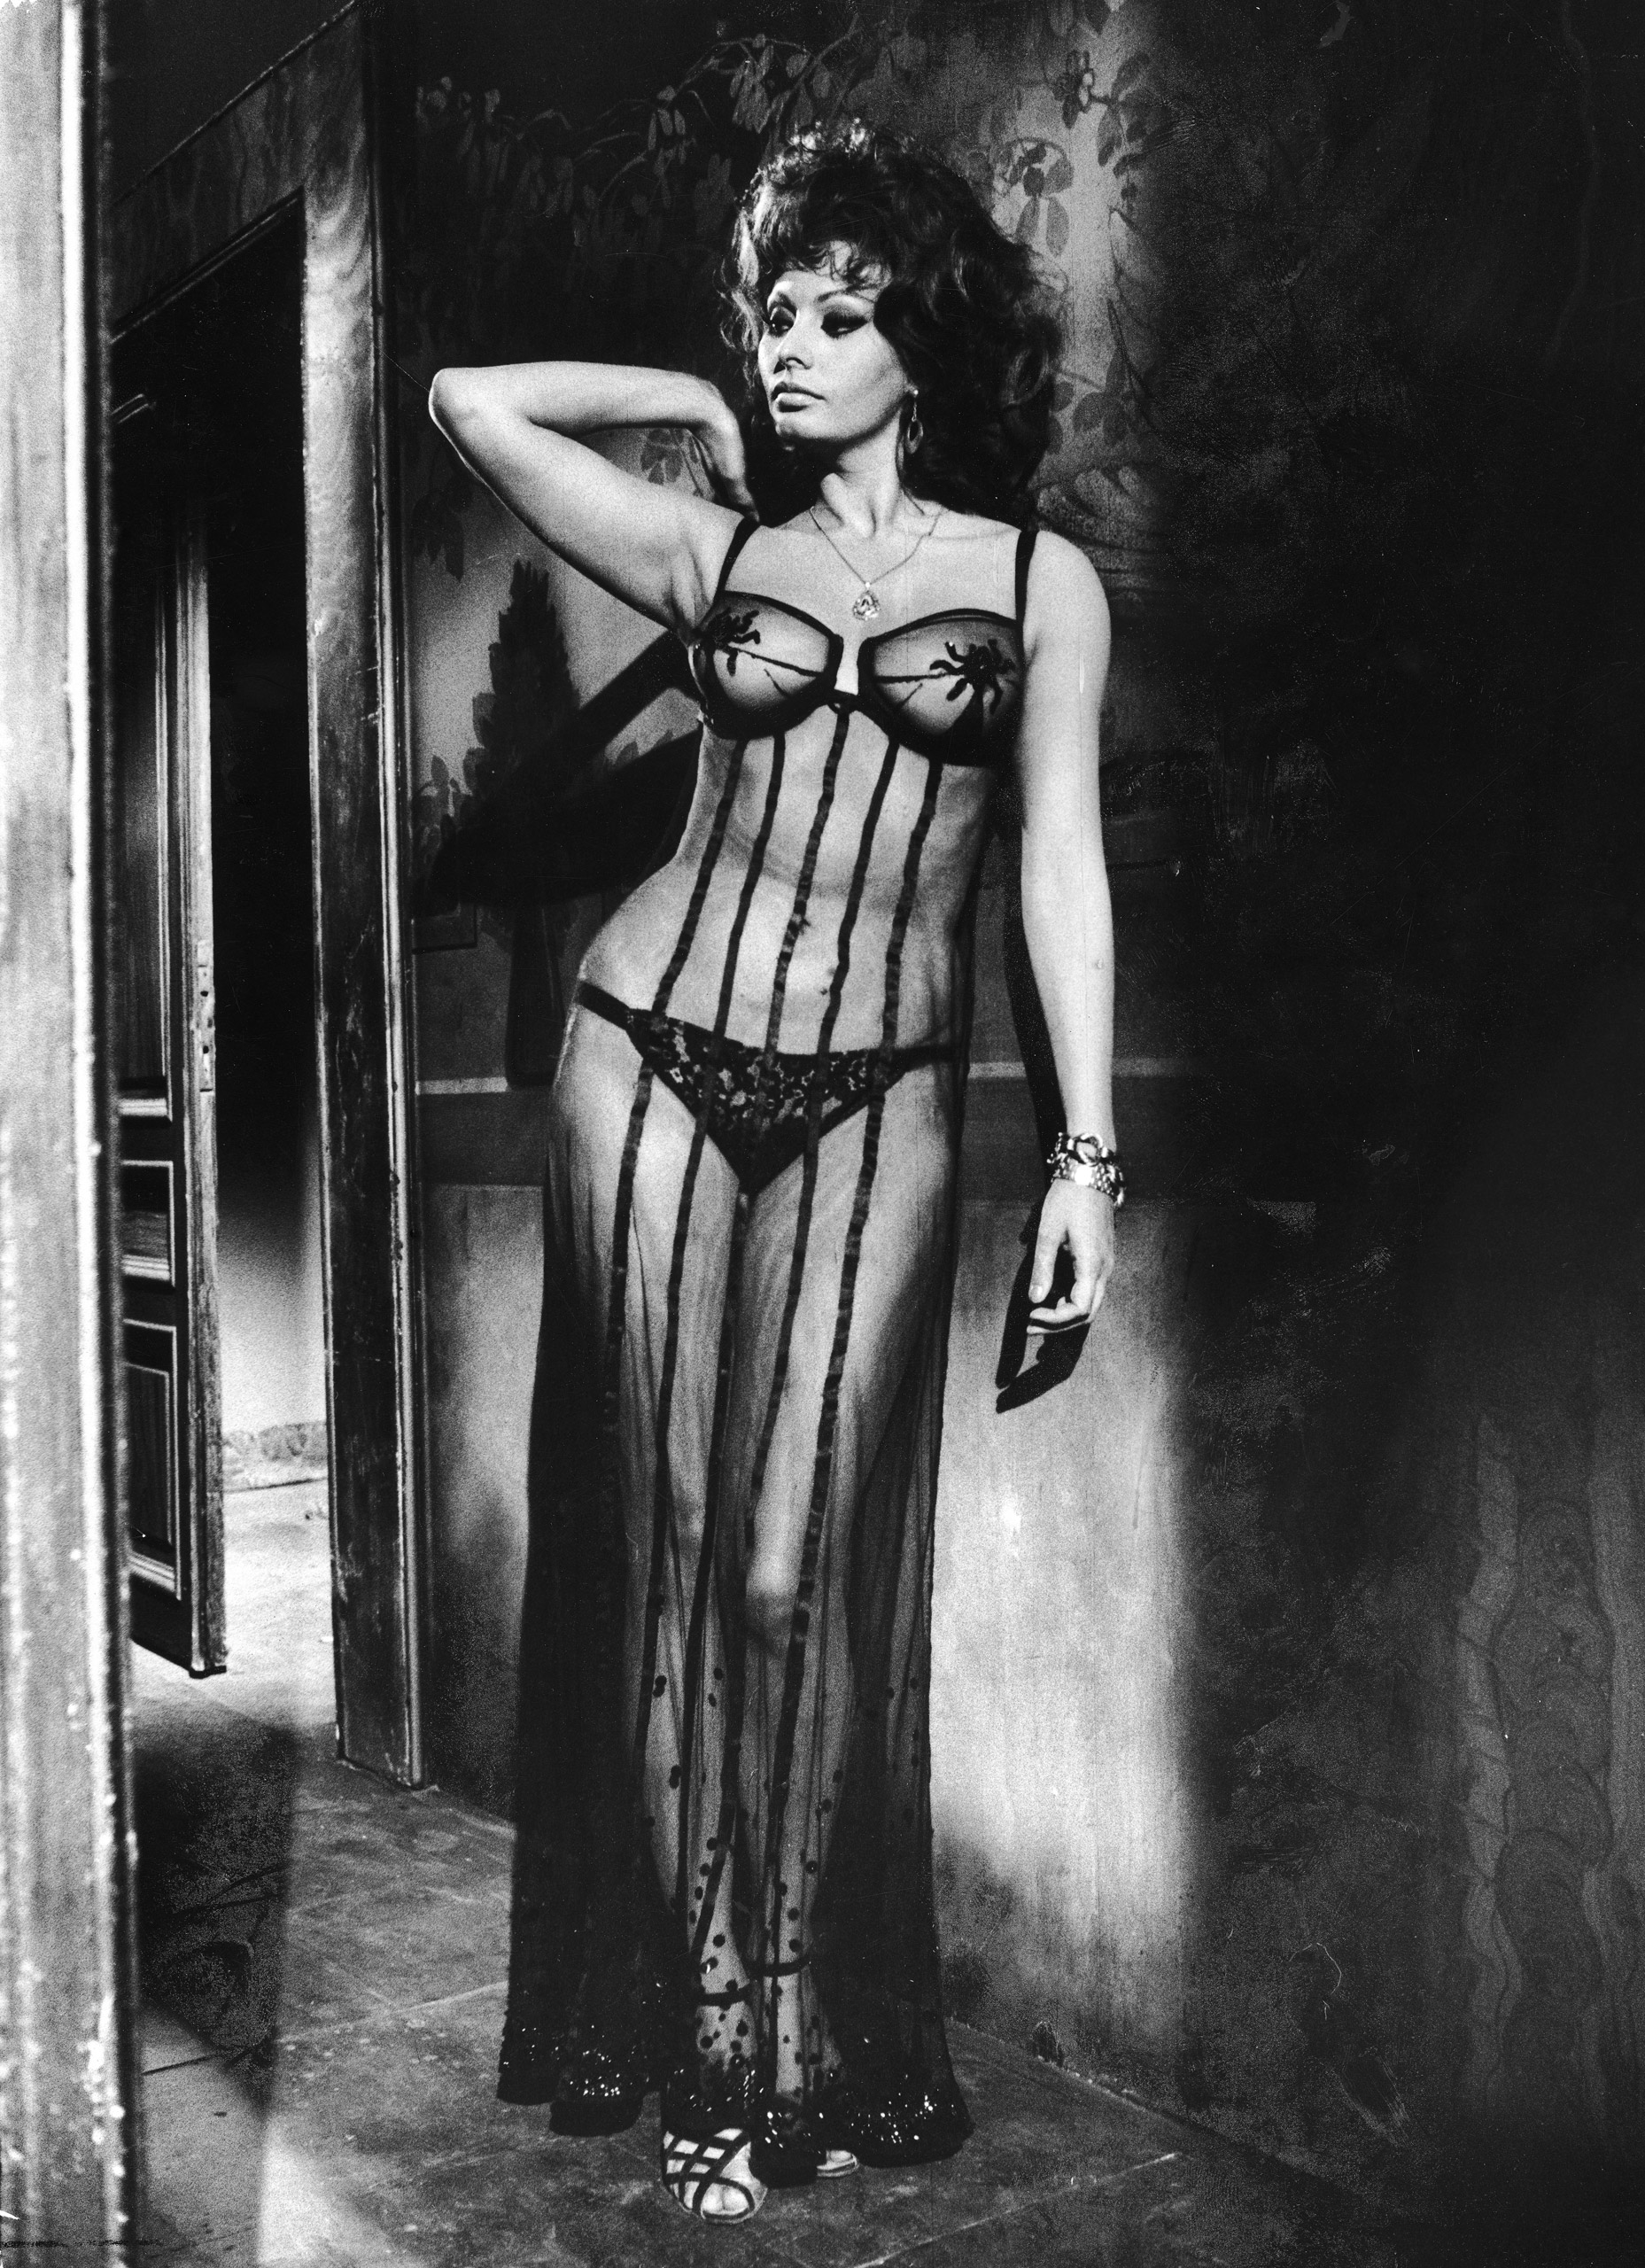 """Depending on weather and comfort level, consider Sophia Loren's sheer look from the brothel scene in the 1964 film """"Marriage Italian Style."""""""